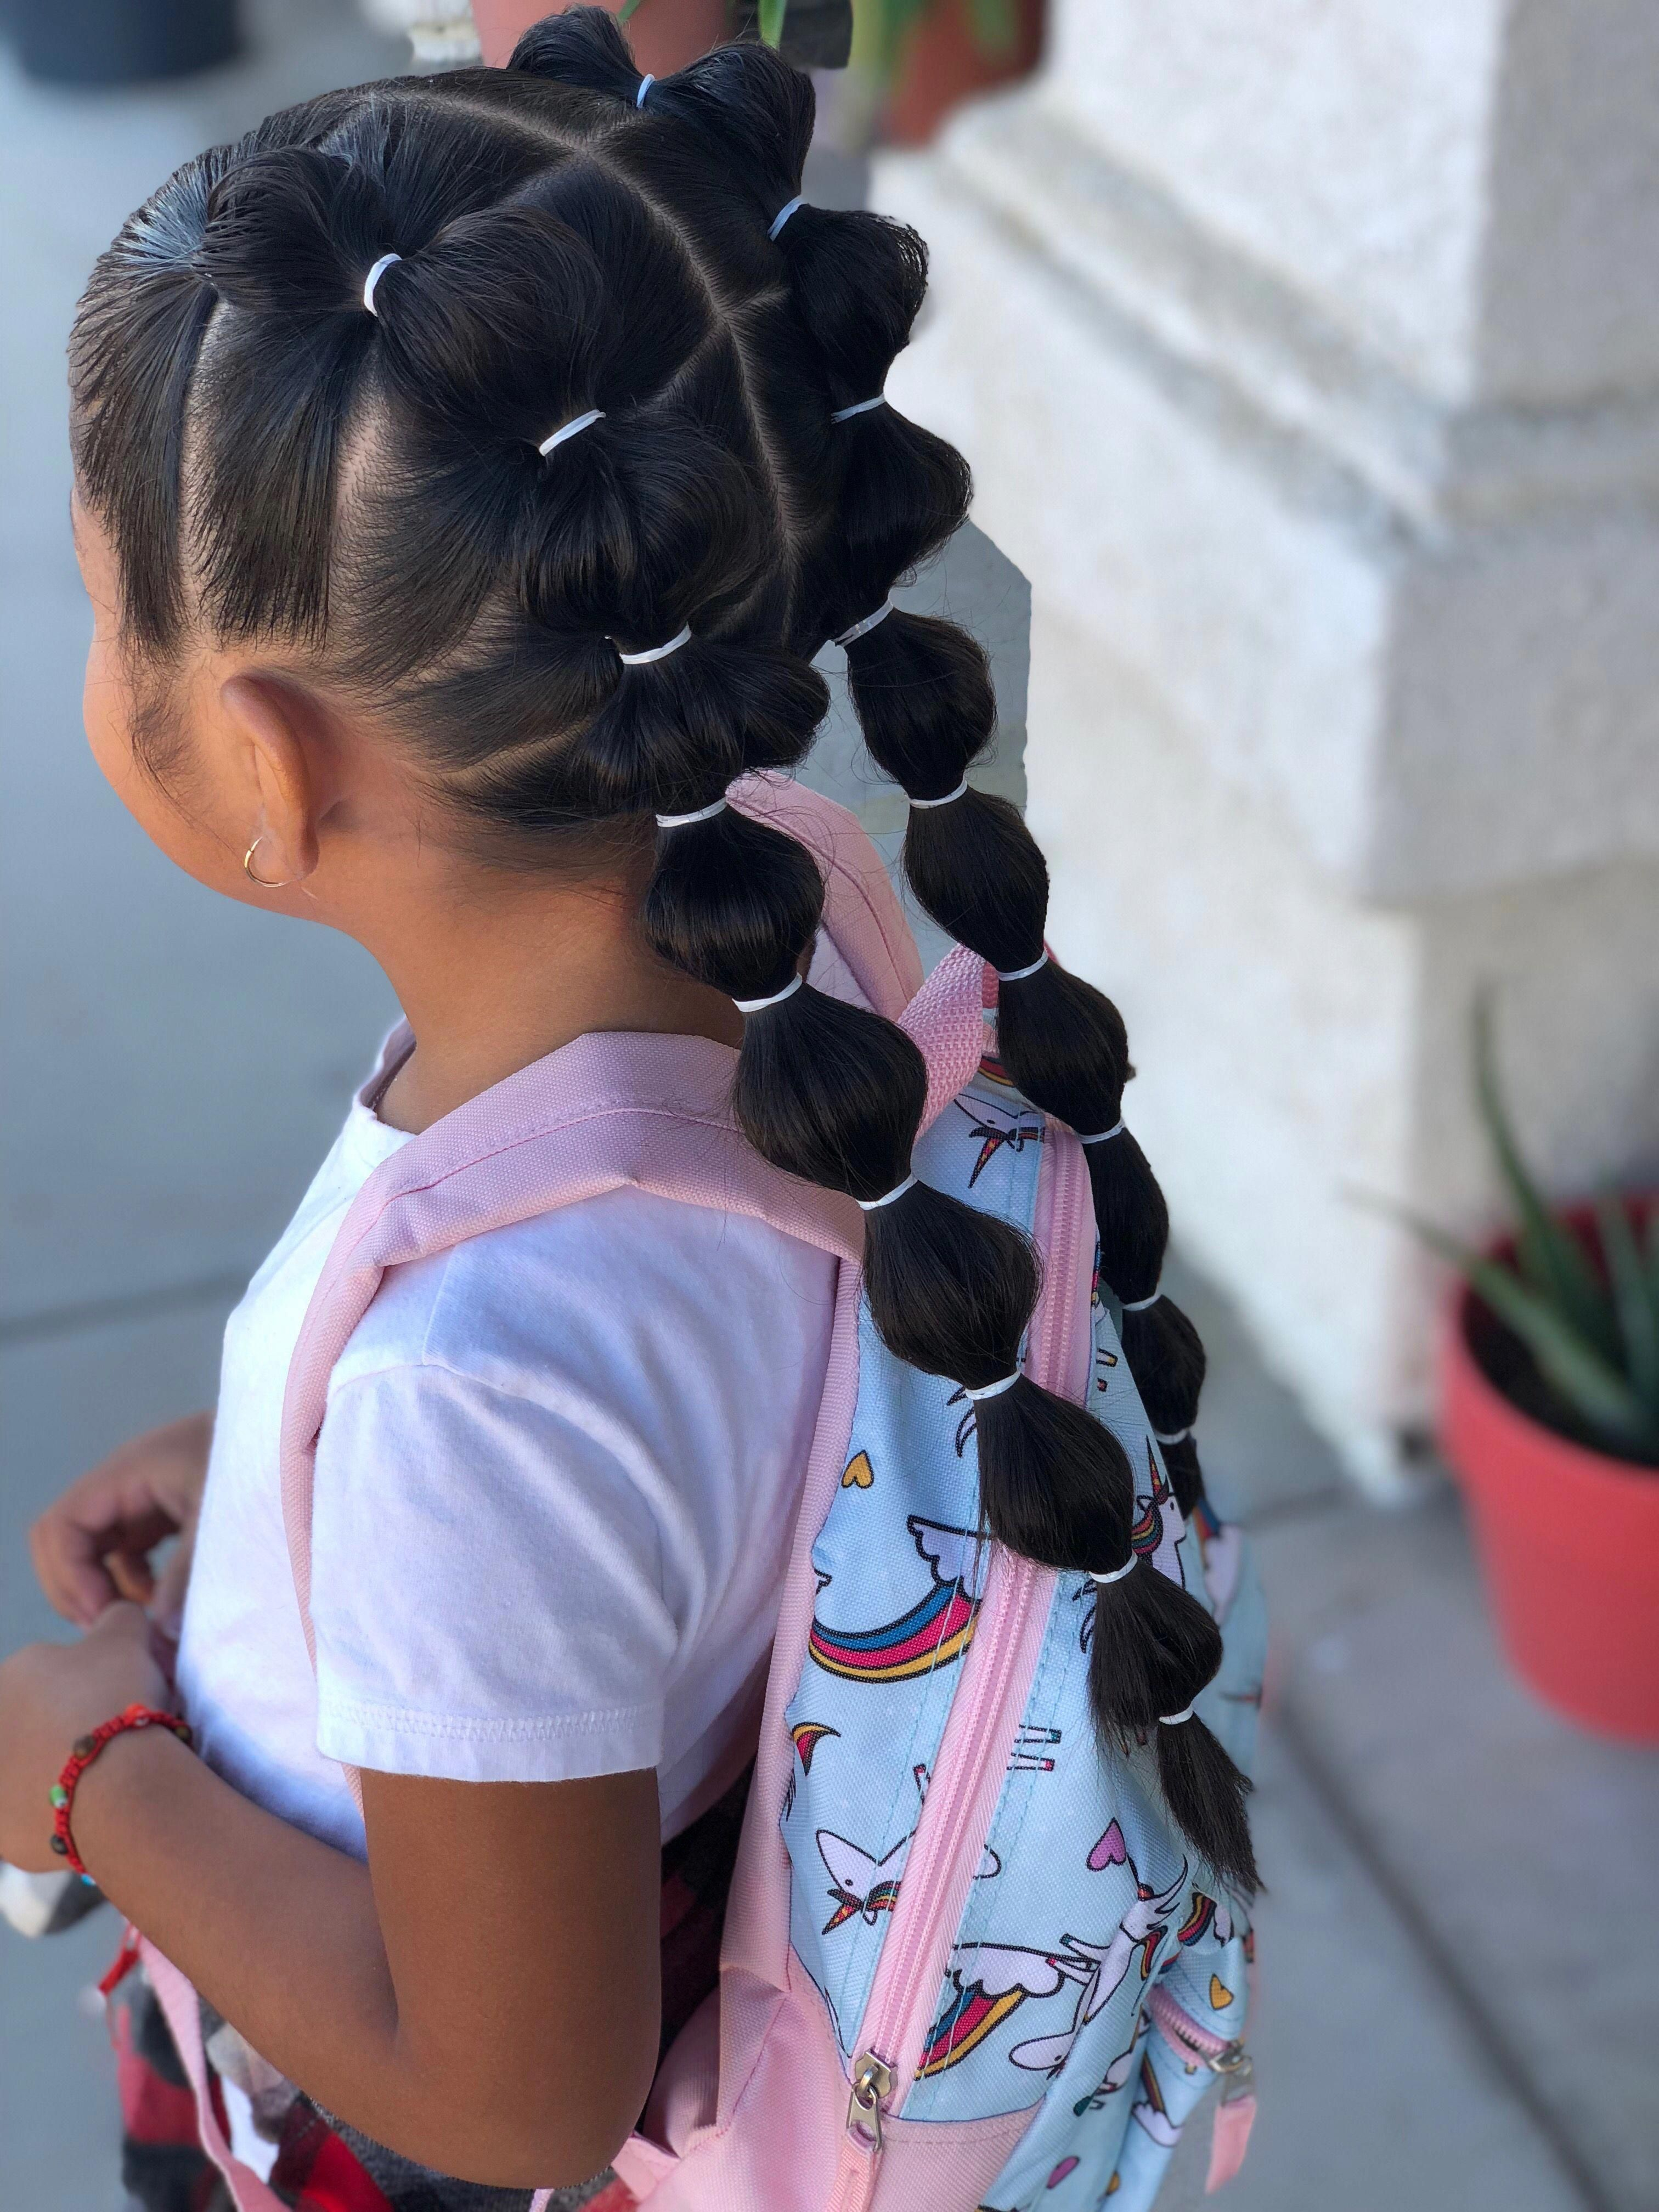 Hairstyles for short curly hair short hair for kid girl